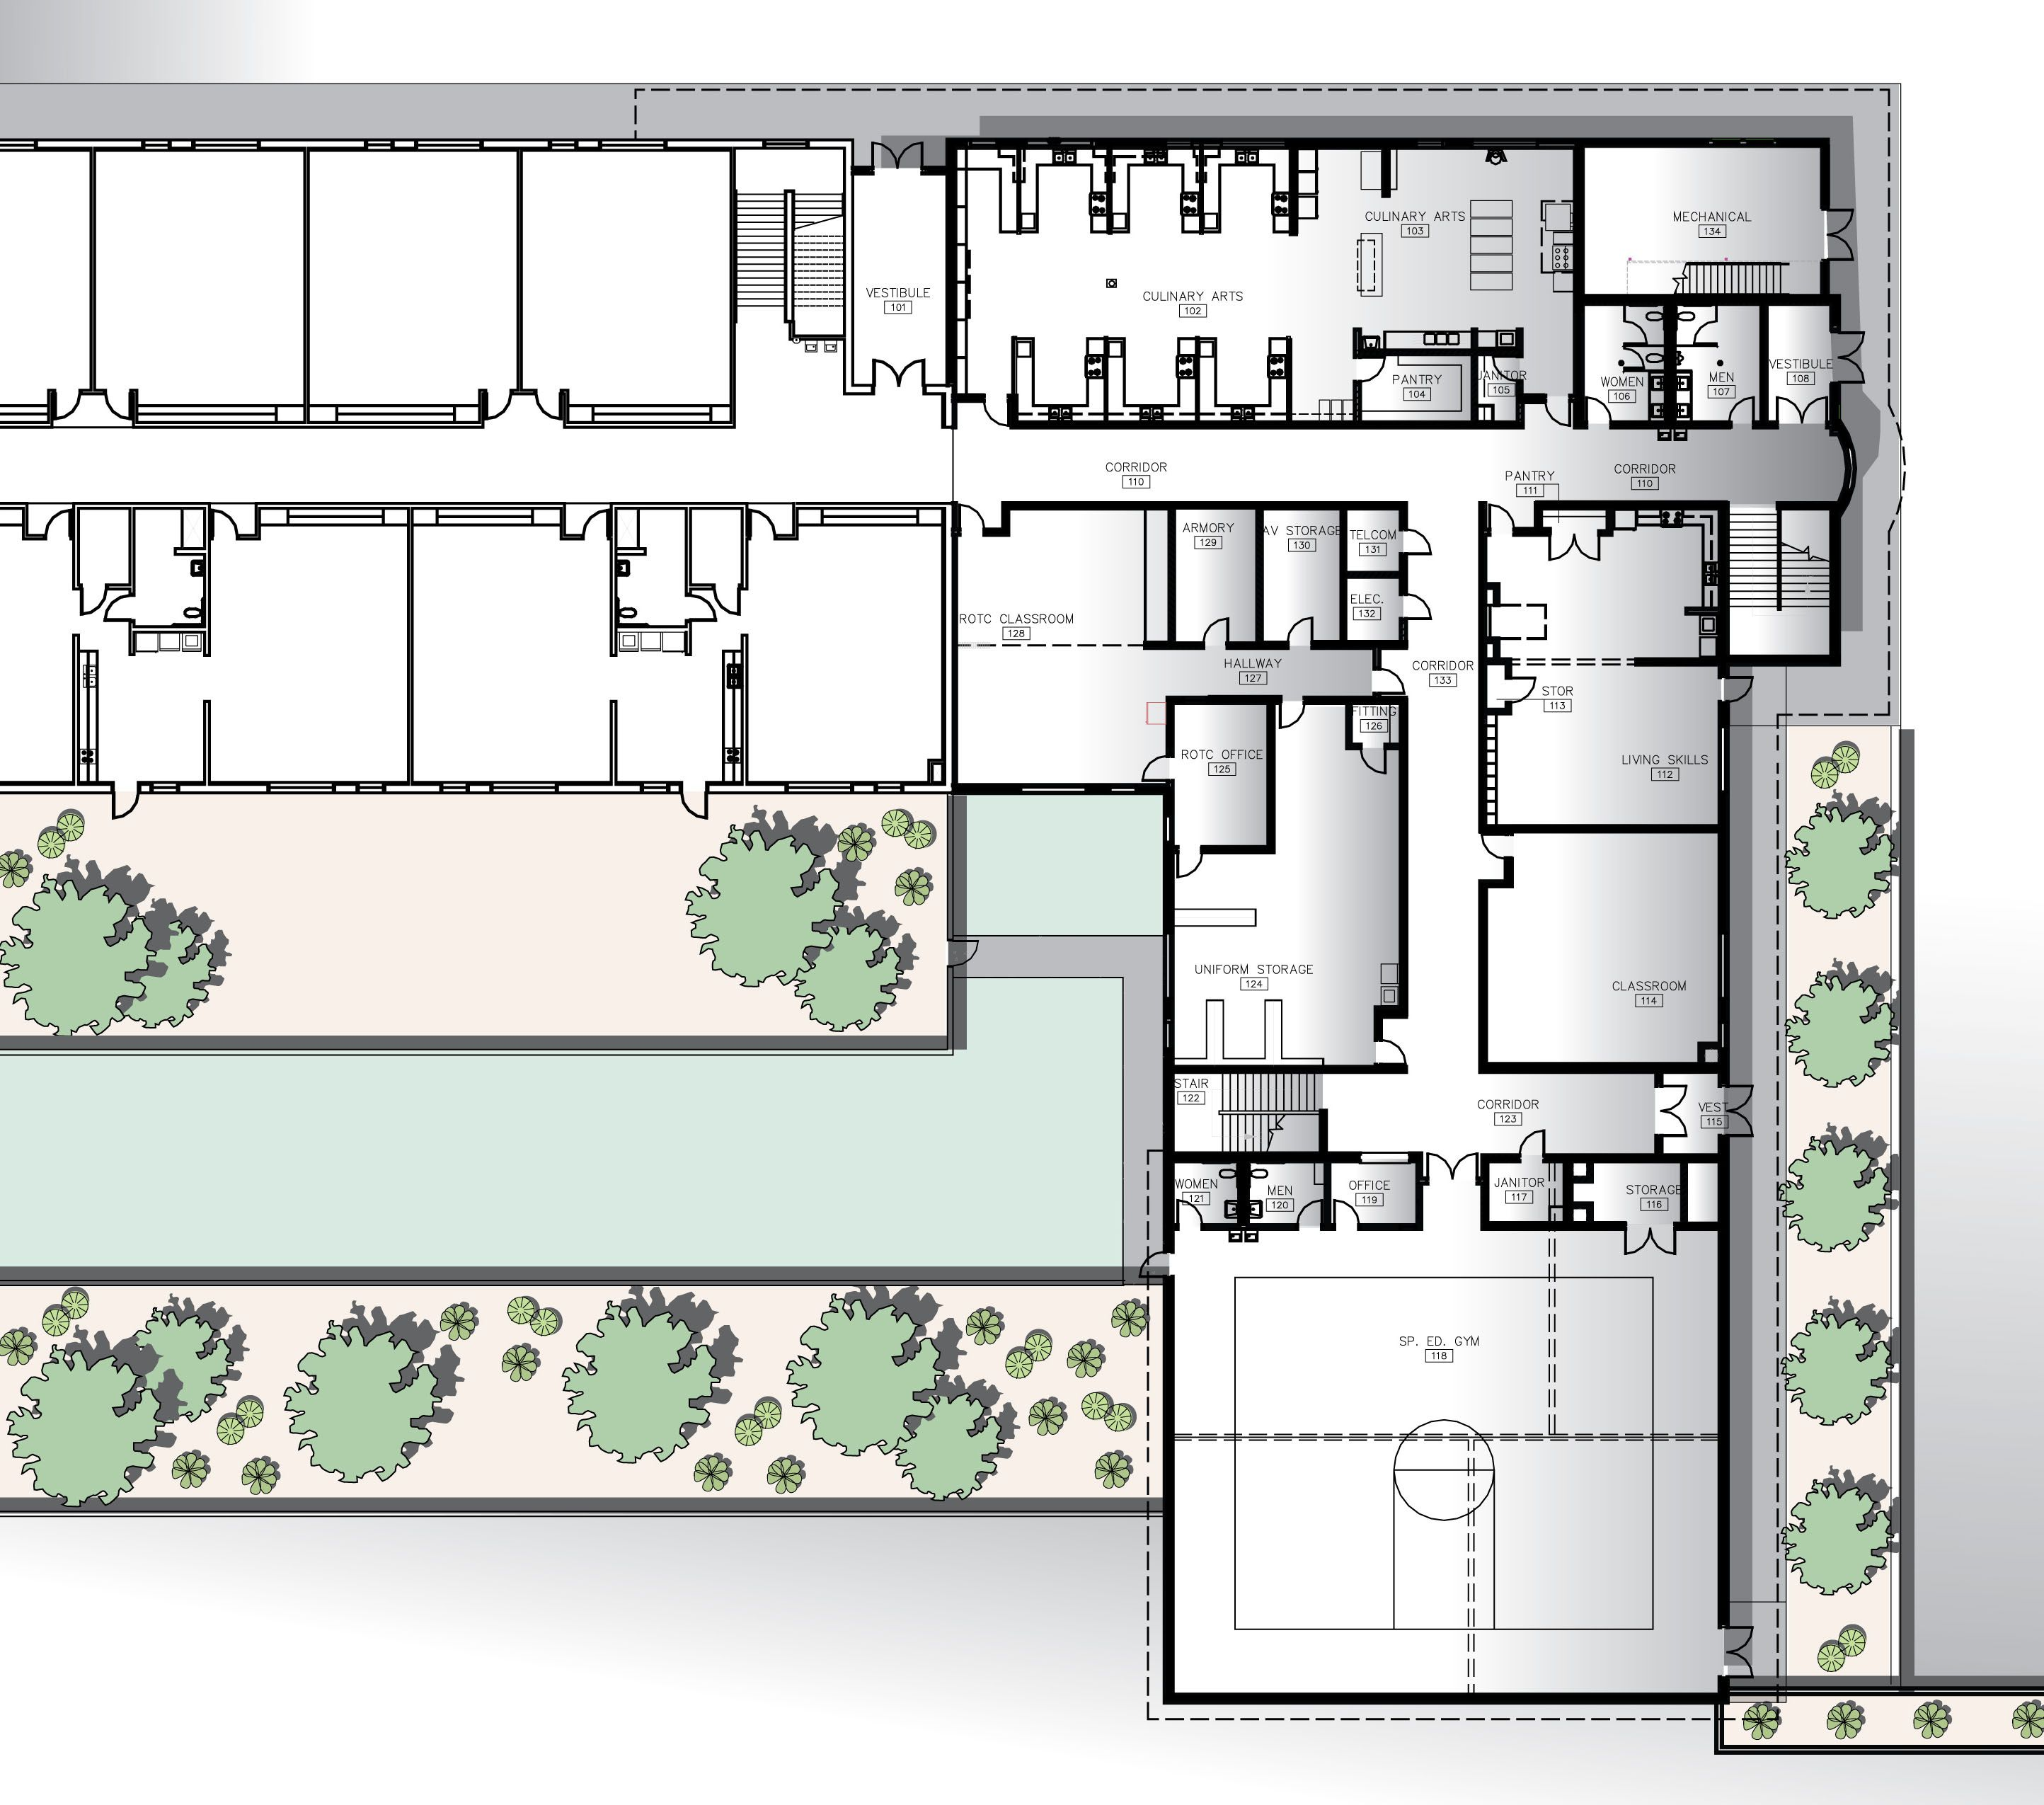 high school floor plans high school floor plan free downloadhigh school floor plan - Free Design Floor Plans